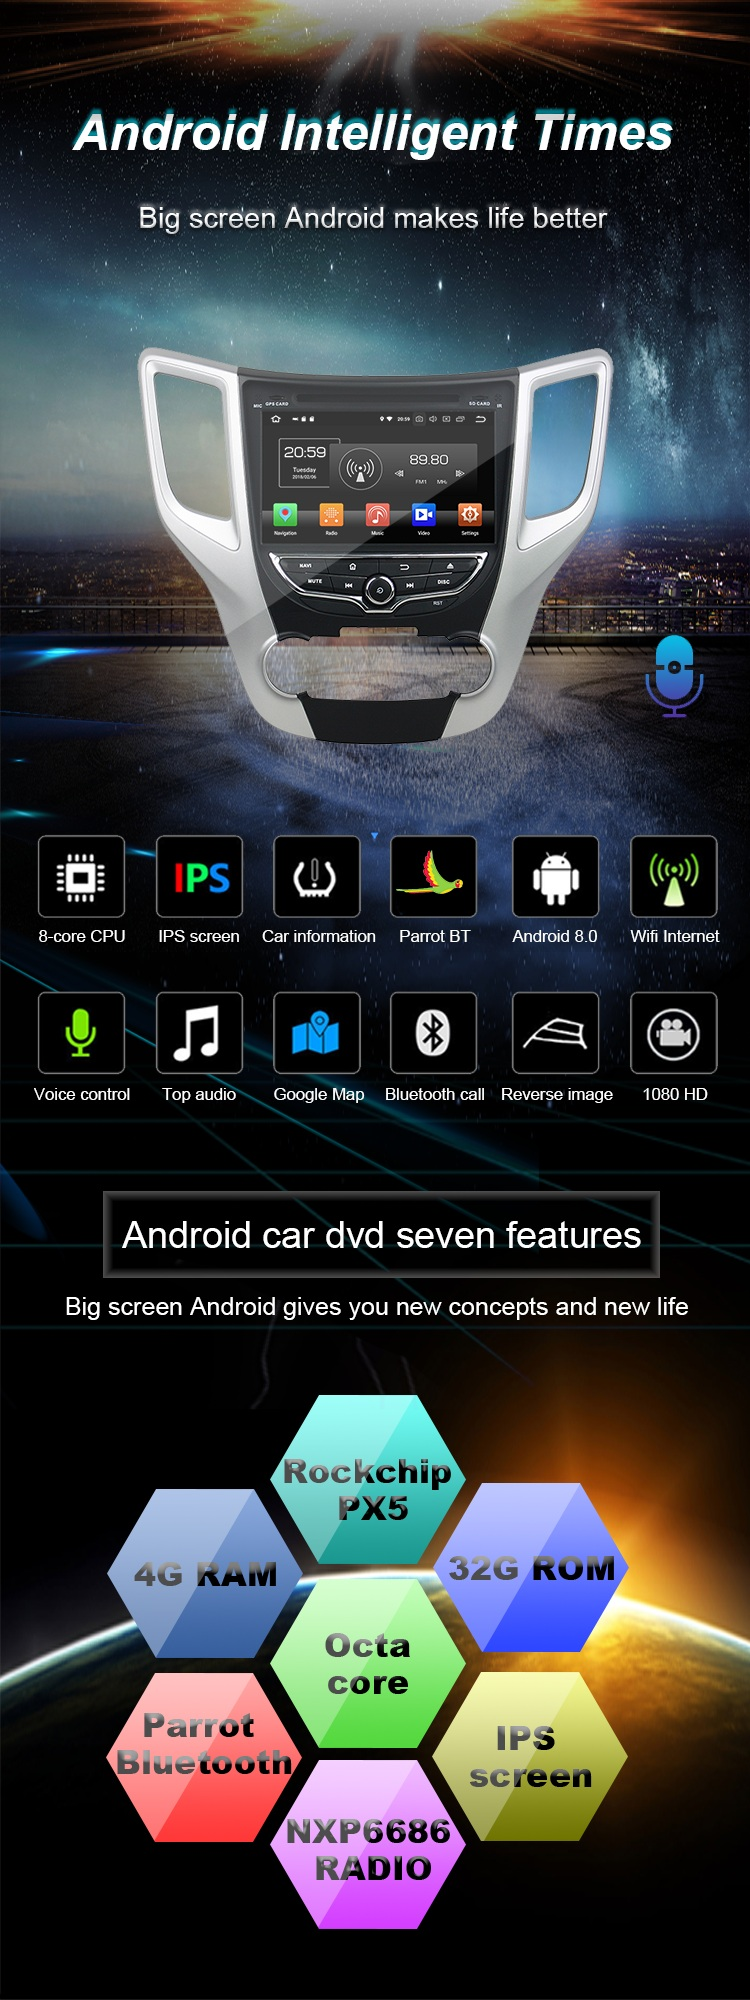 wholesale car stereo apple carplay android 8.0 octa core custom car stereo for CS35 carplay stereo